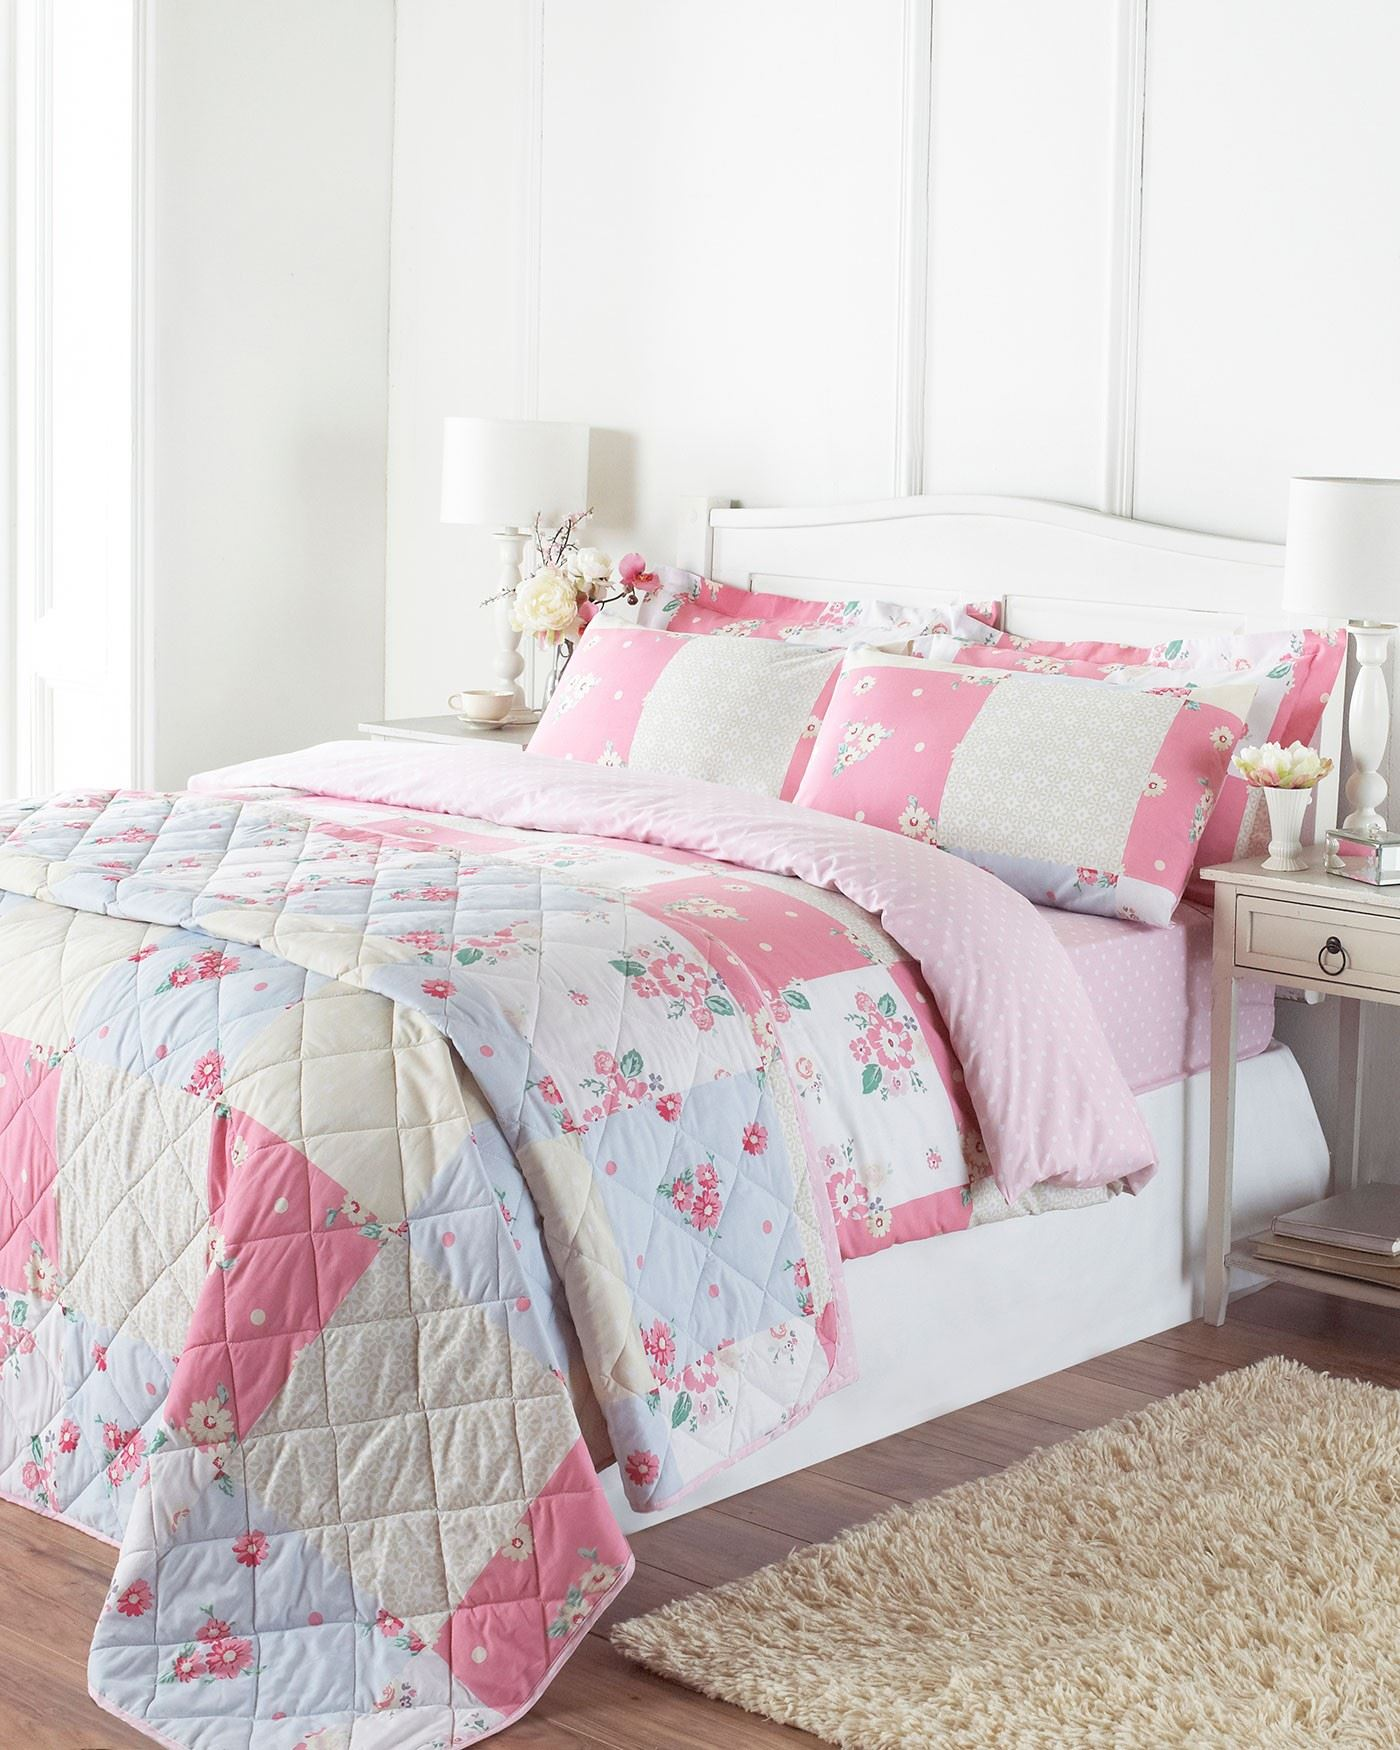 King-size quilt covers measure about cm in width and cm in length and are suitable for queen-size and king-size beds, with two pillowcases making up the set. Super King quilt covers are the largest size on offer and usually measure about cm in width.